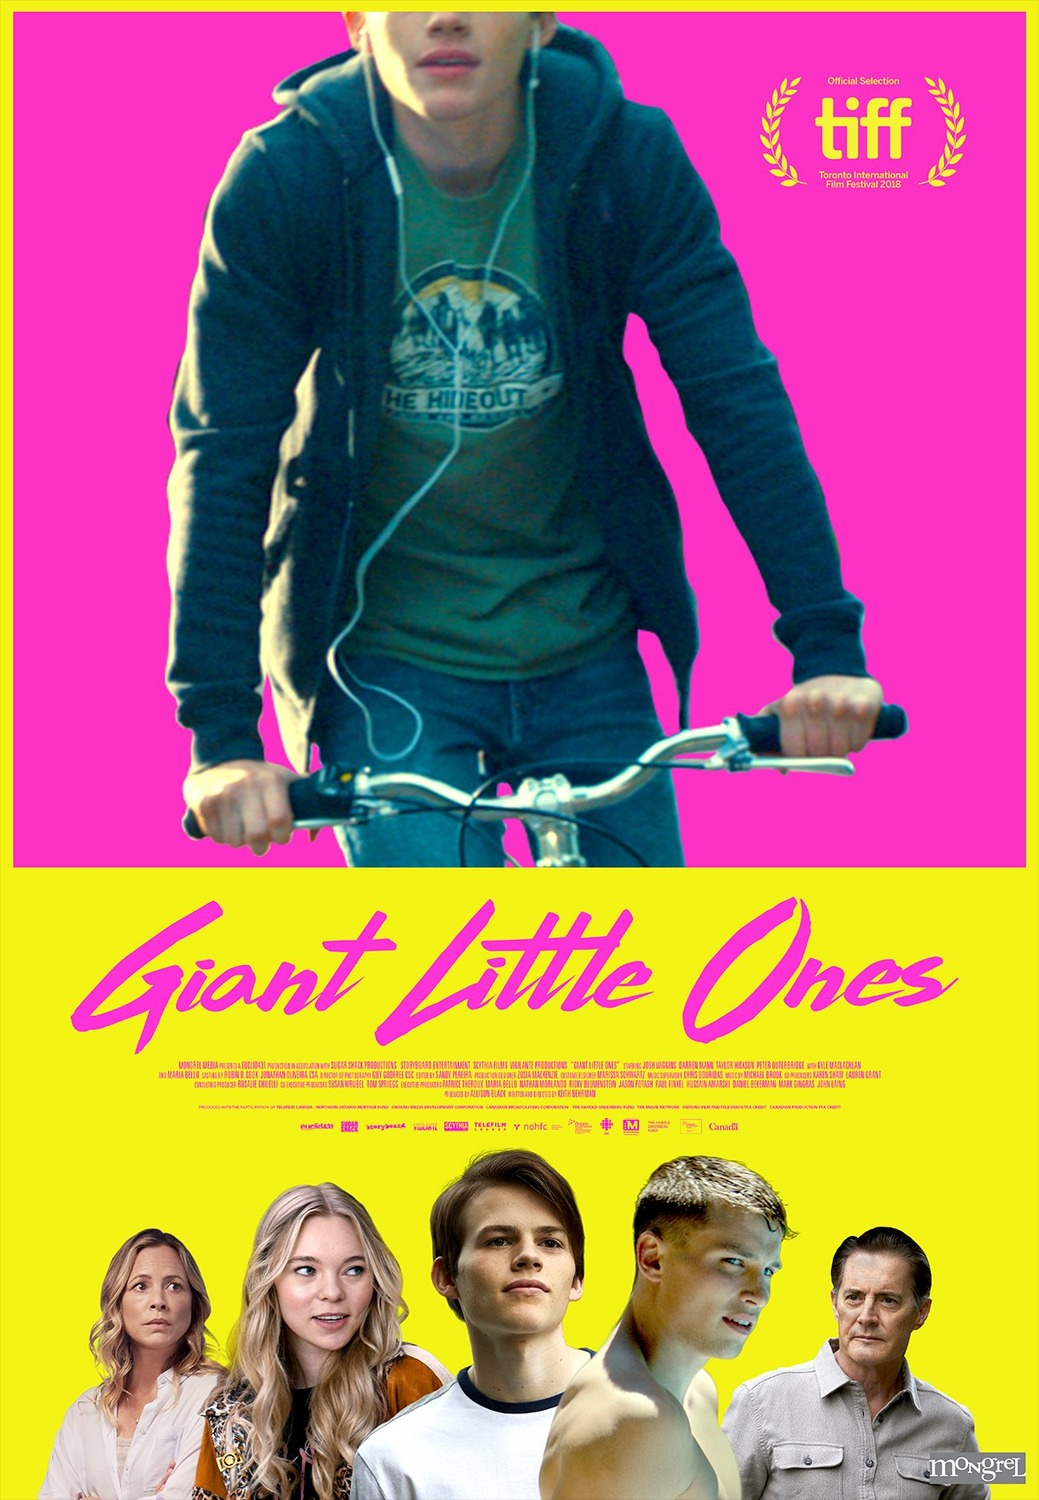 407fdc3393c0f Giant Little Ones  Filmes similares - AdoroCinema